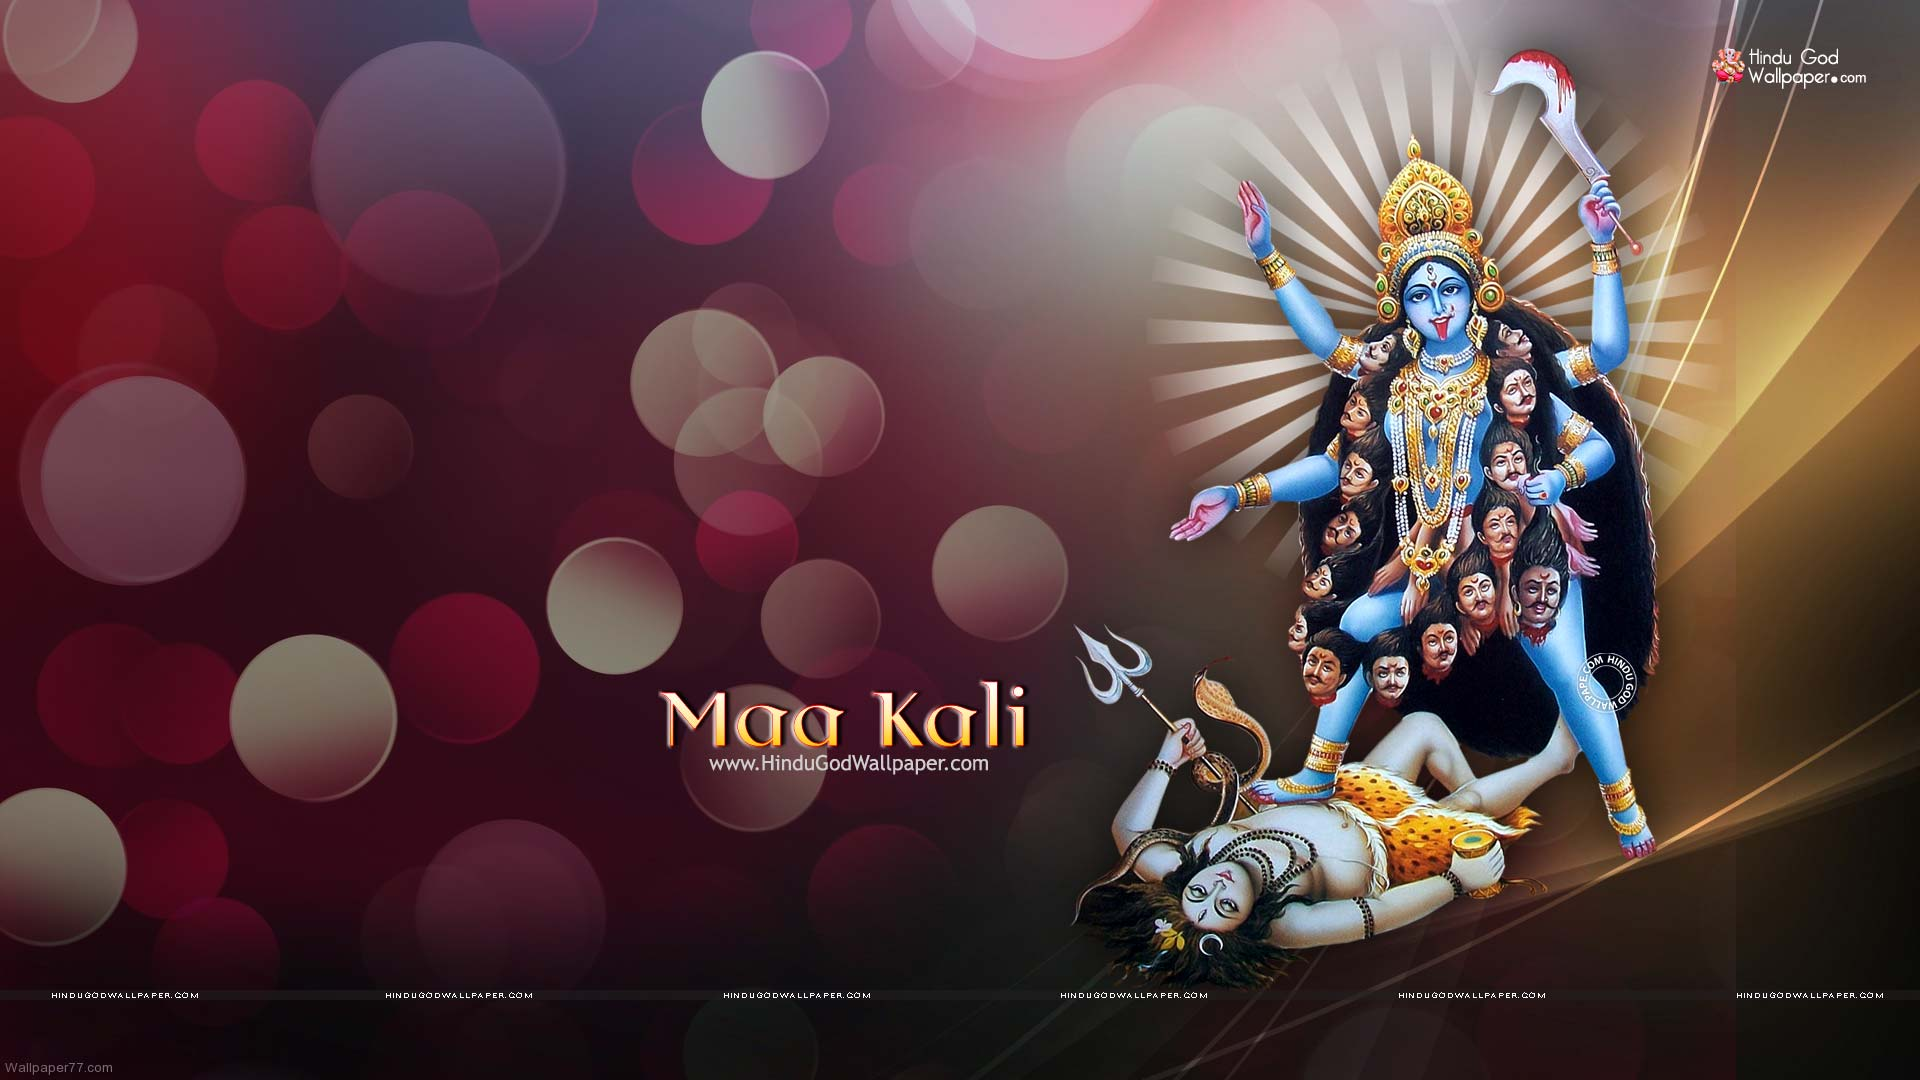 1080p Maa Kali Hd Wallpapers Full Size Images Free Download